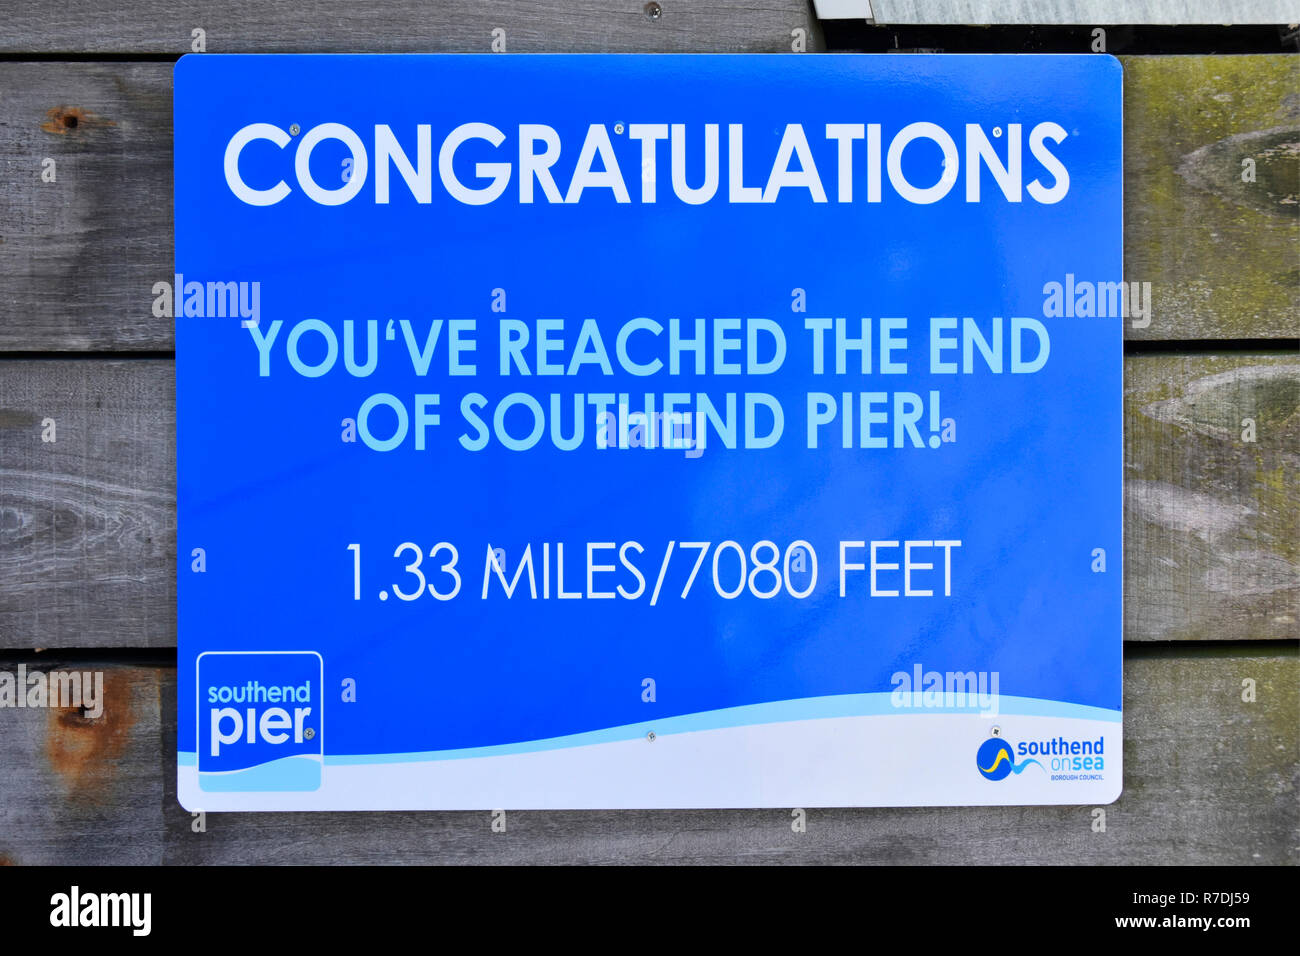 Congratulations sign to walkers on famous longest distance pleasure pier in the world at Southend on sea River Thames estuary seaside Essex England UK - Stock Image